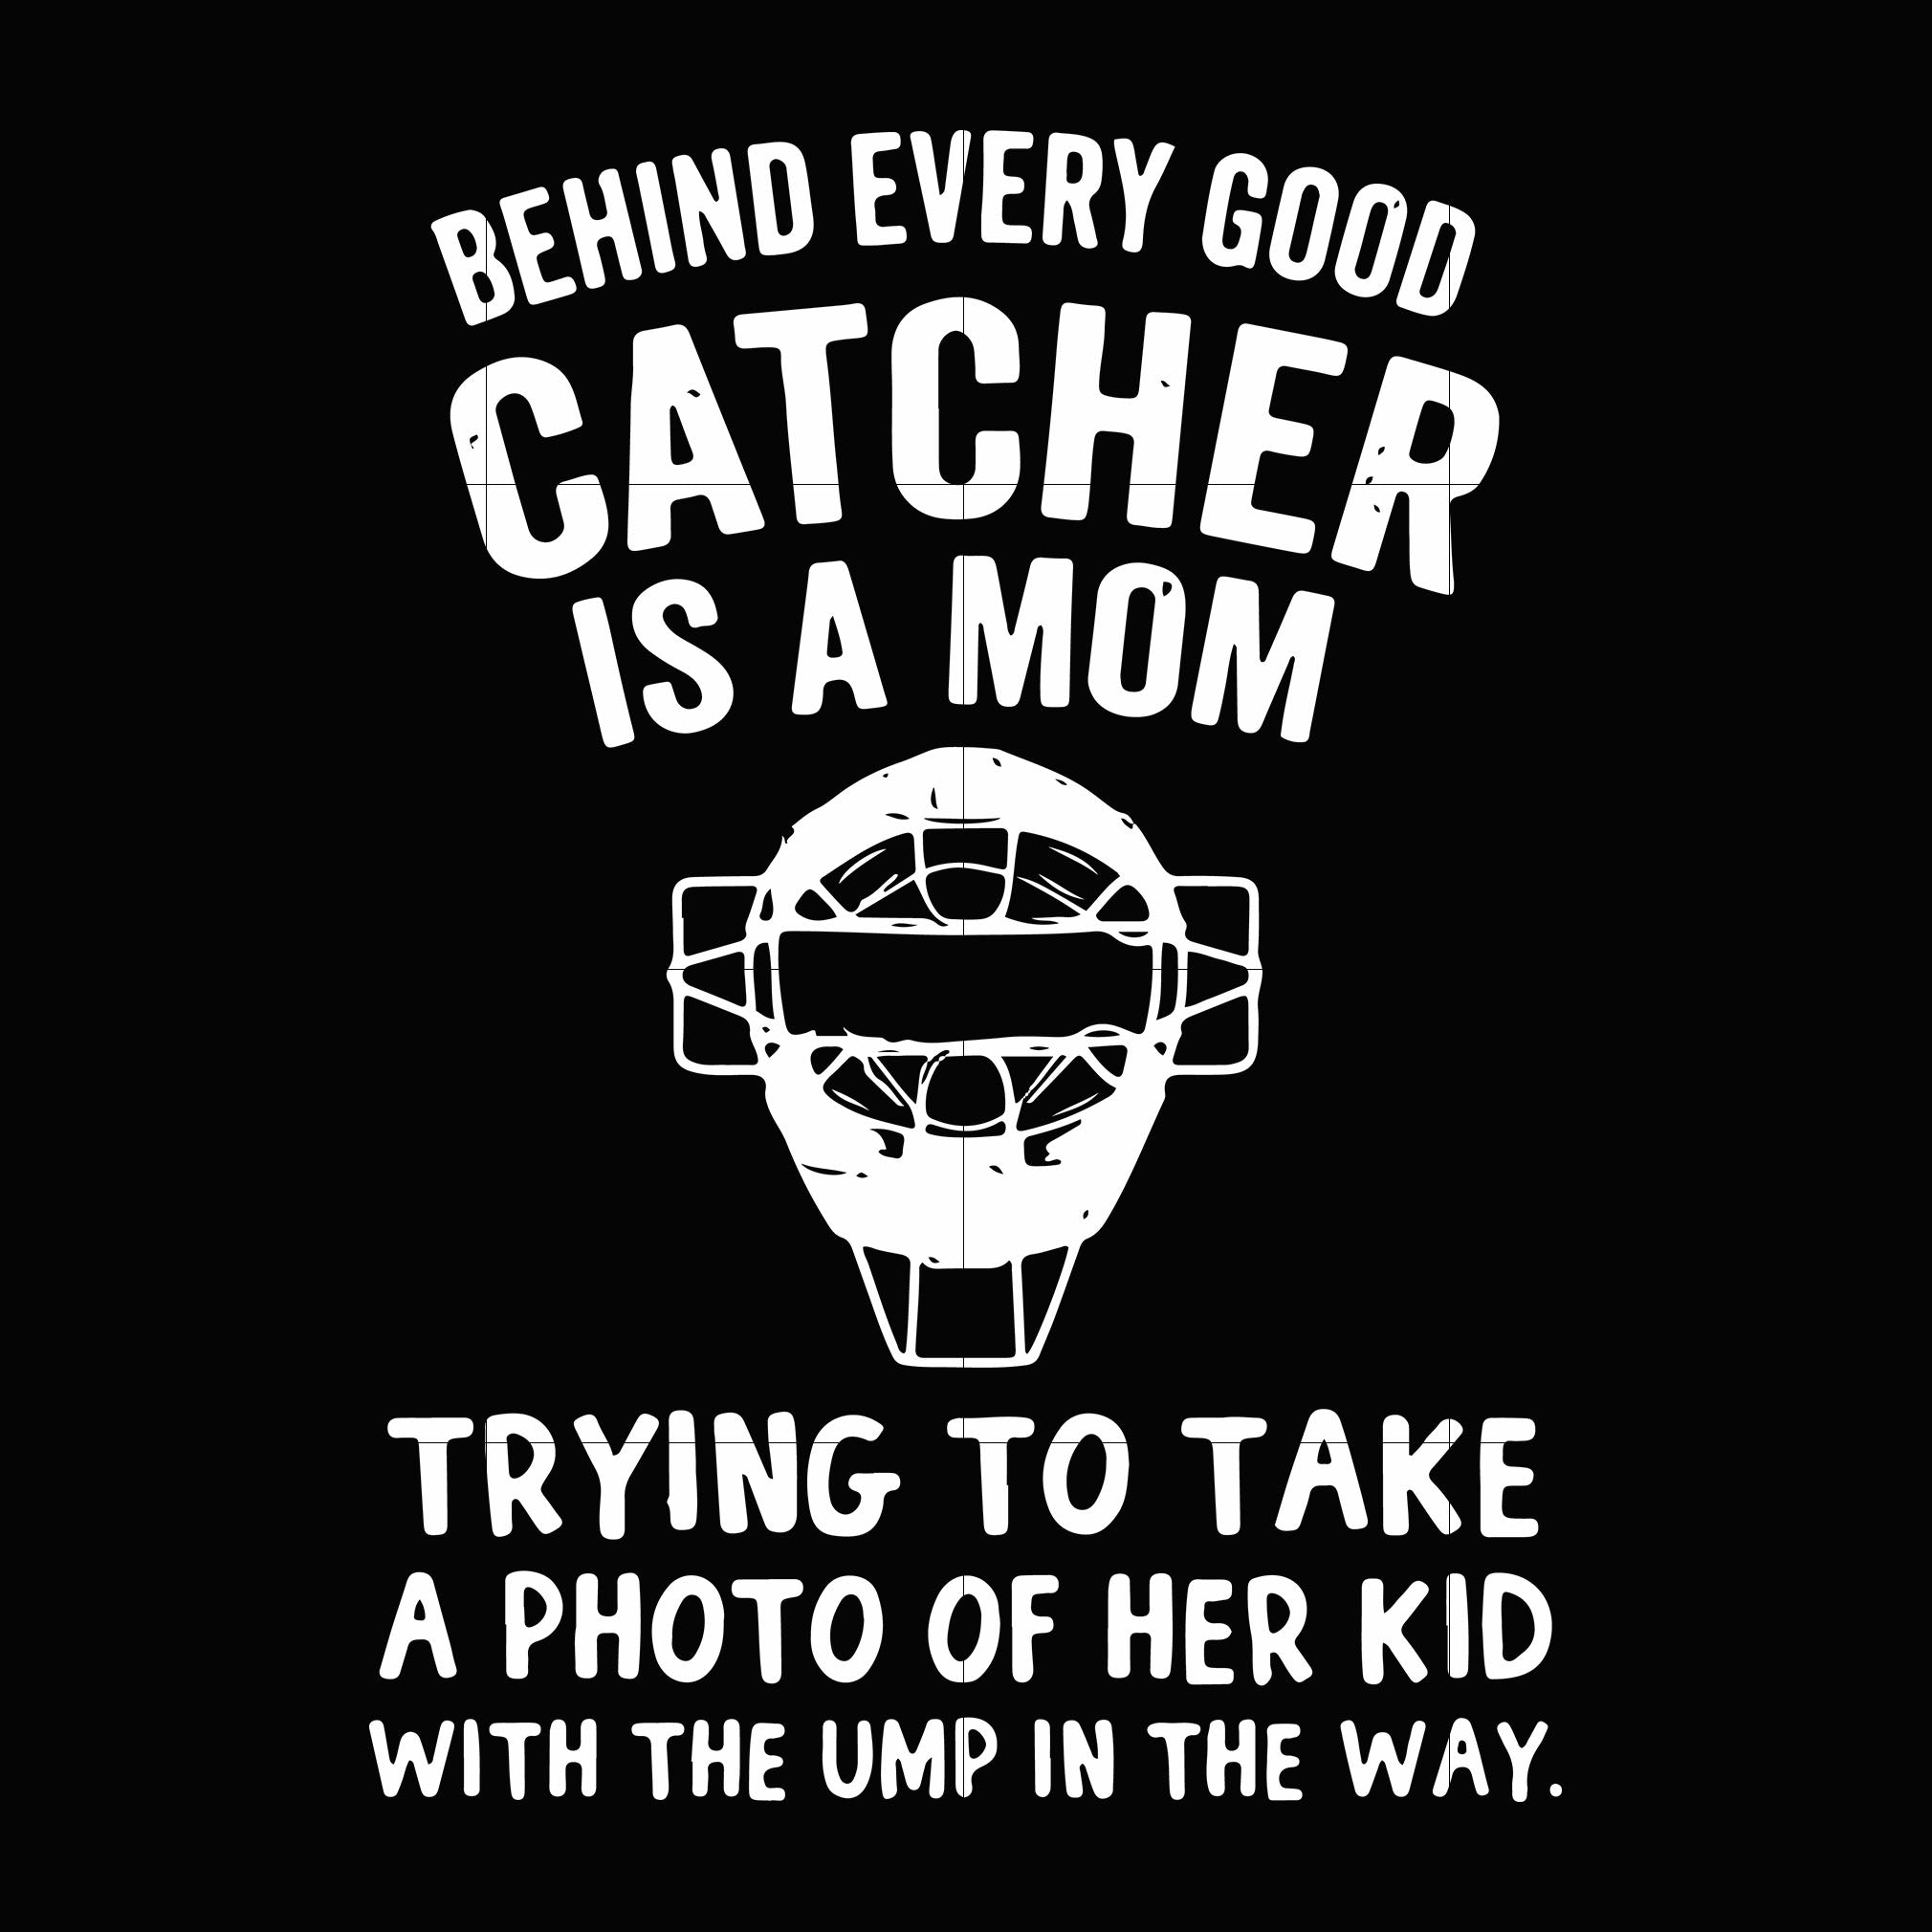 Behind every good catcher is a mom trying to take a photo of her kid with the ump in the way svg,dxf,eps,png digital file